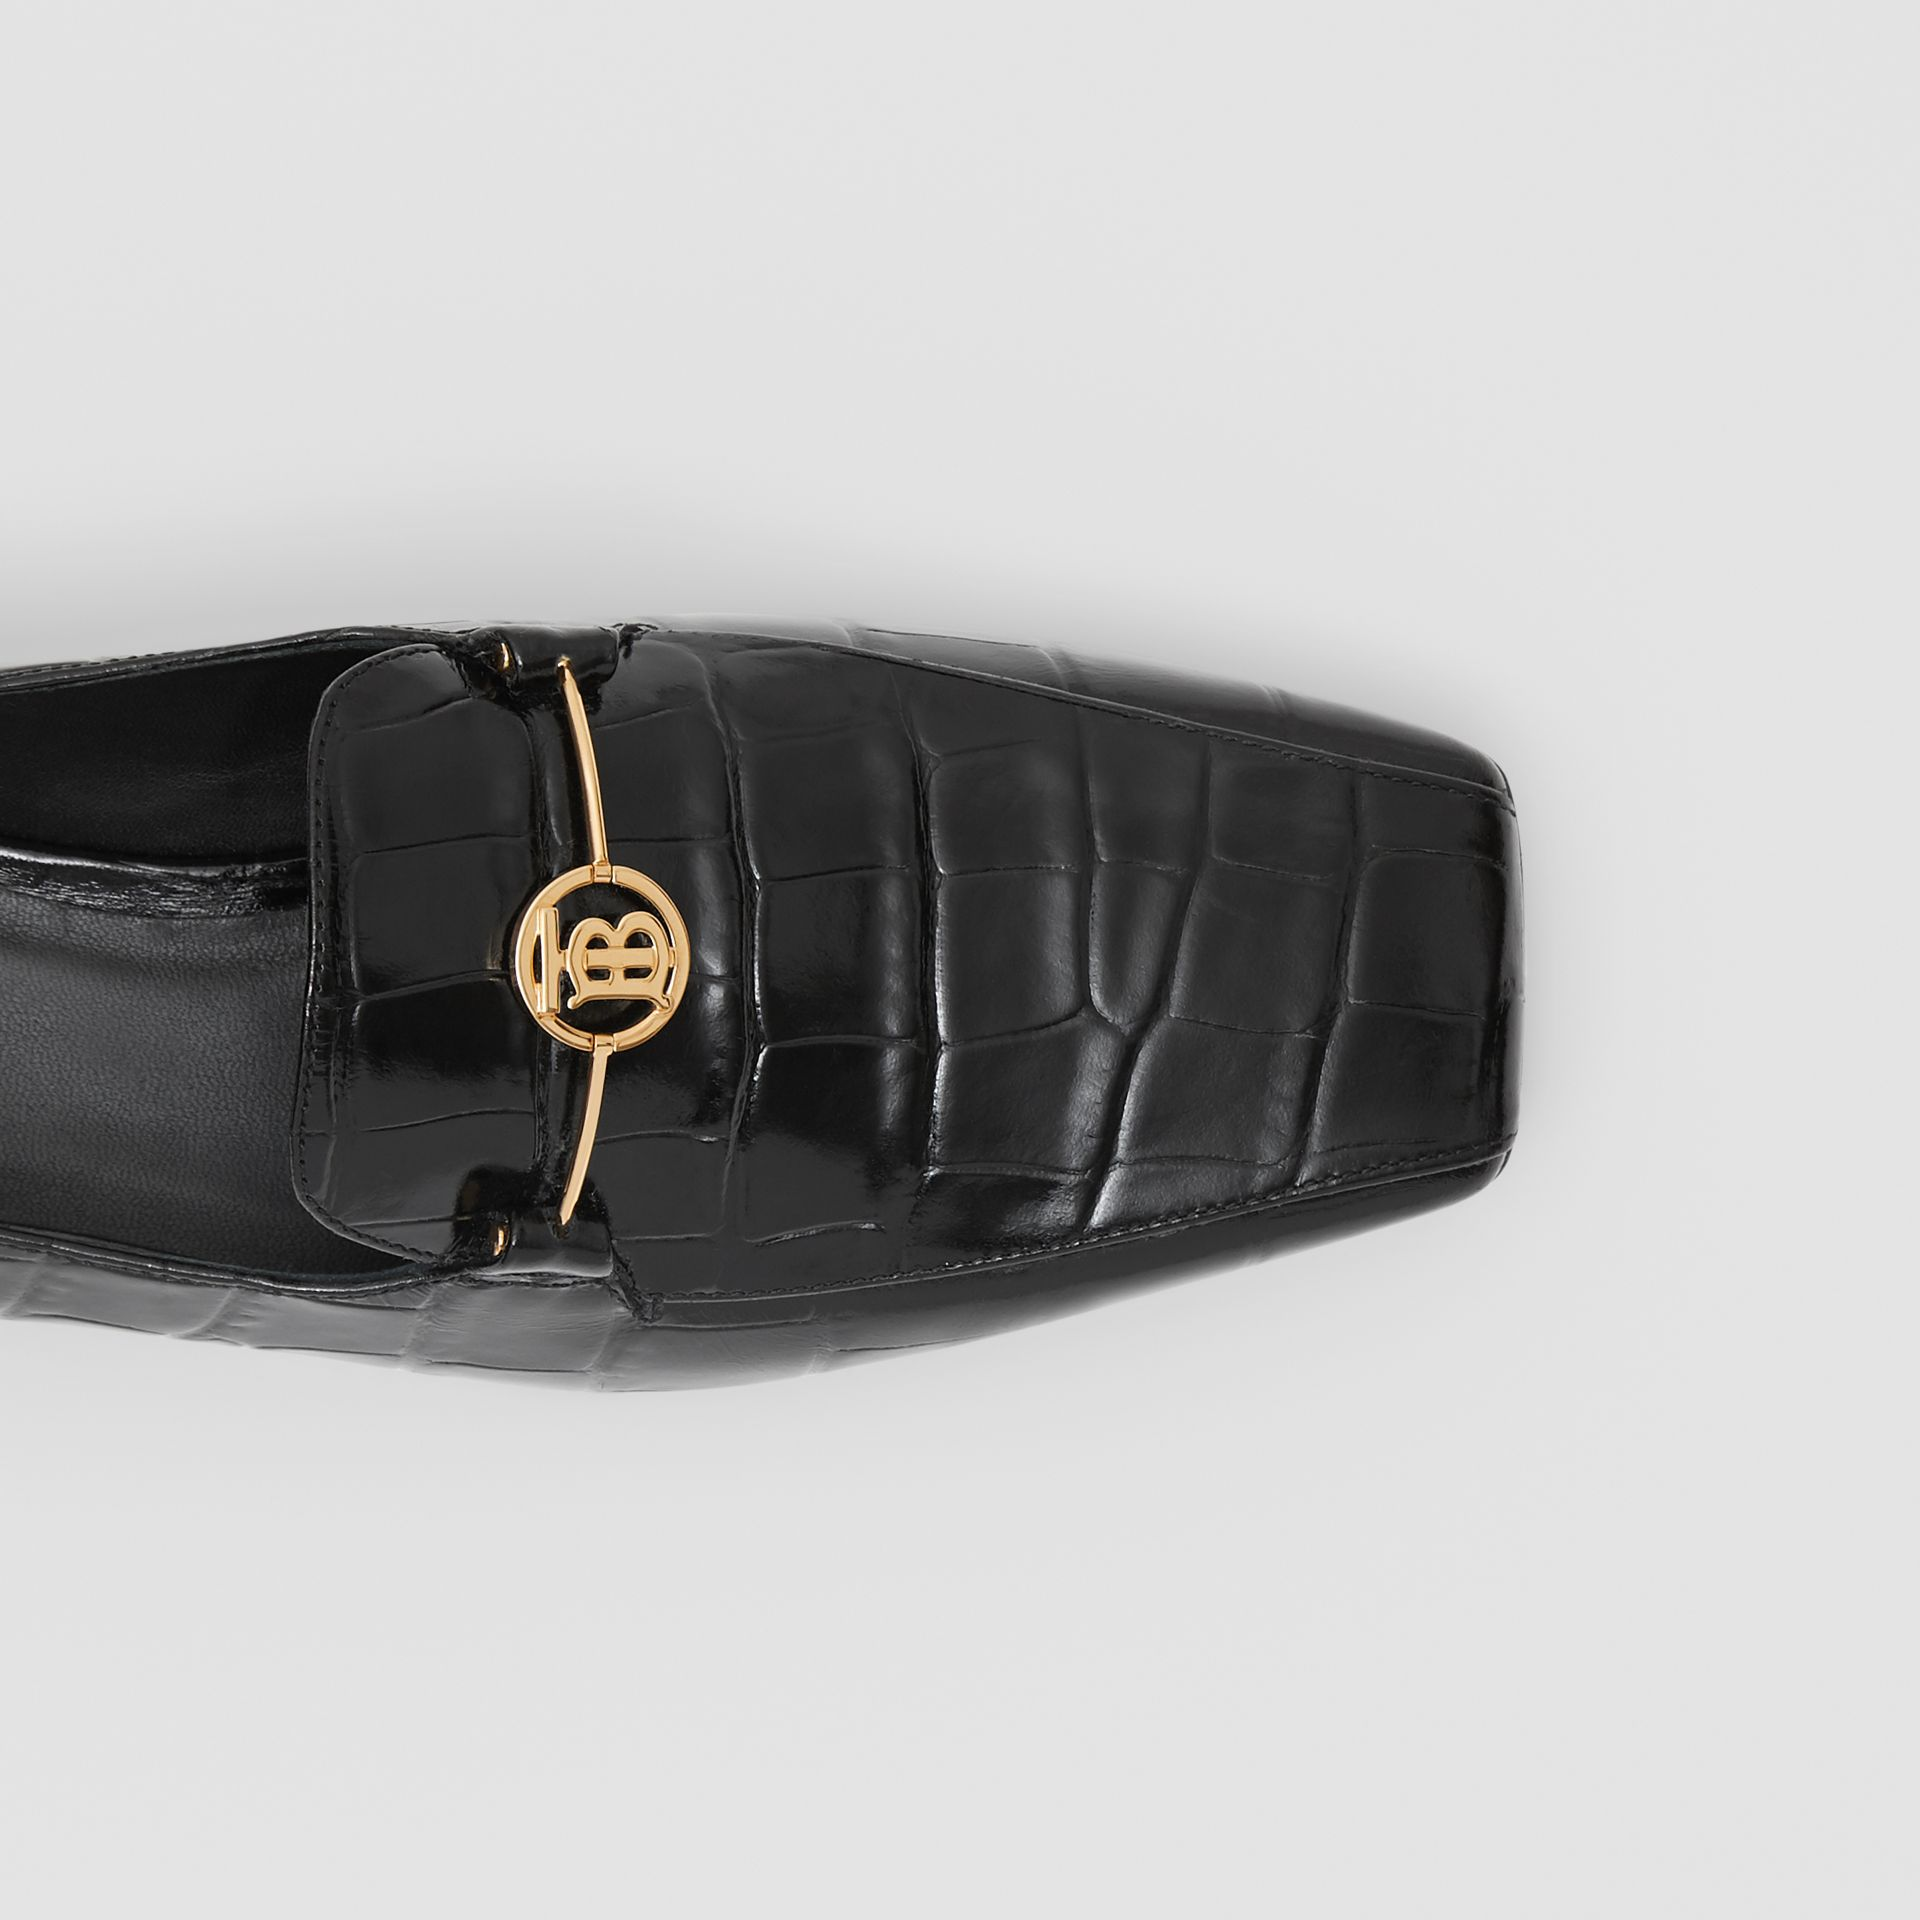 Monogram Motif Embossed Leather Loafers in Black - Women | Burberry - gallery image 1